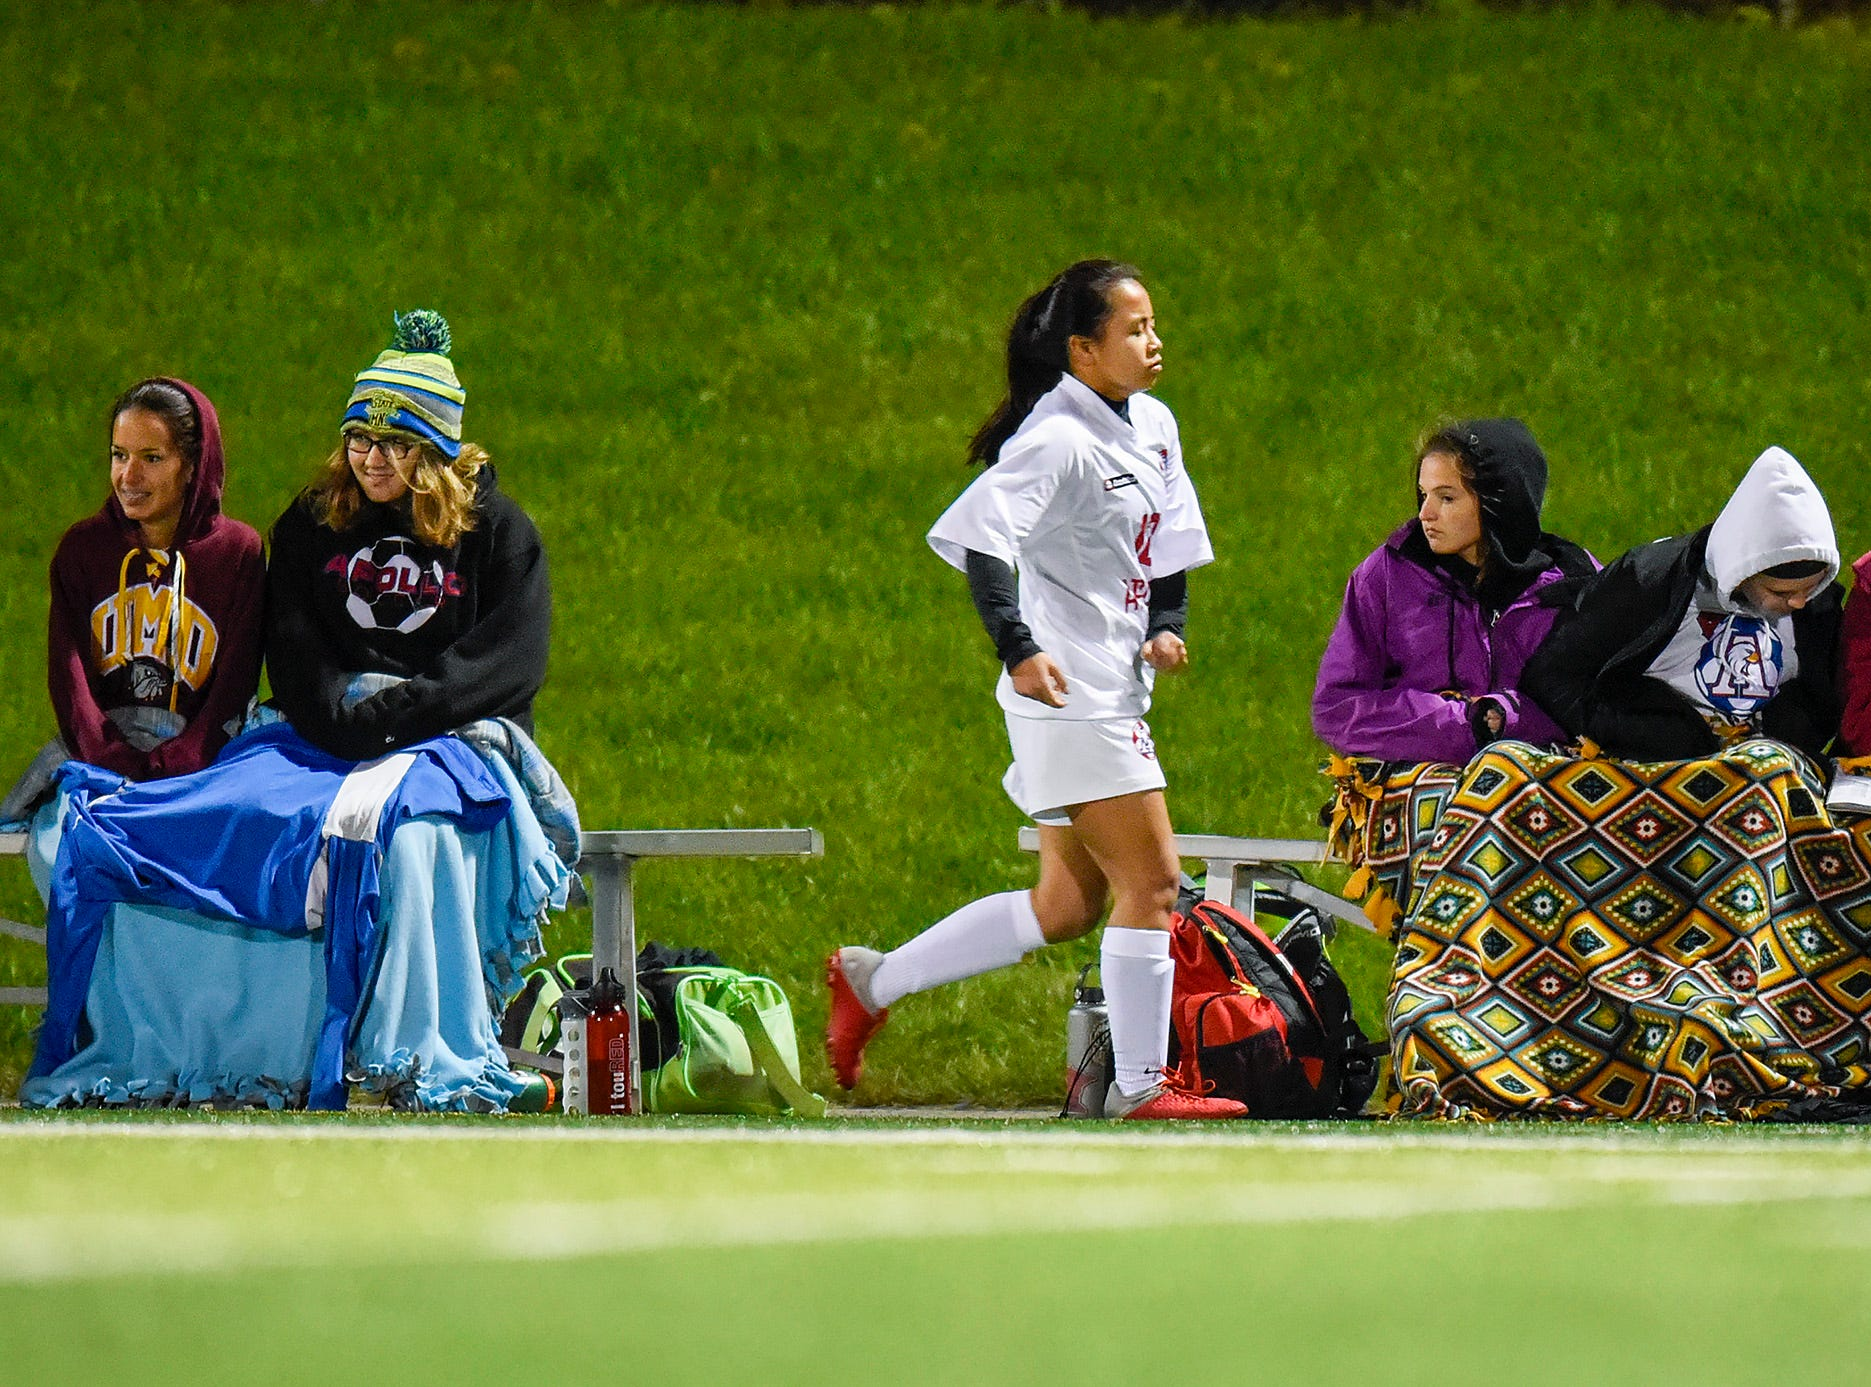 Apollo players stay warm on the bench during the second half Thursday, Sept. 27, at Husky Stadium.